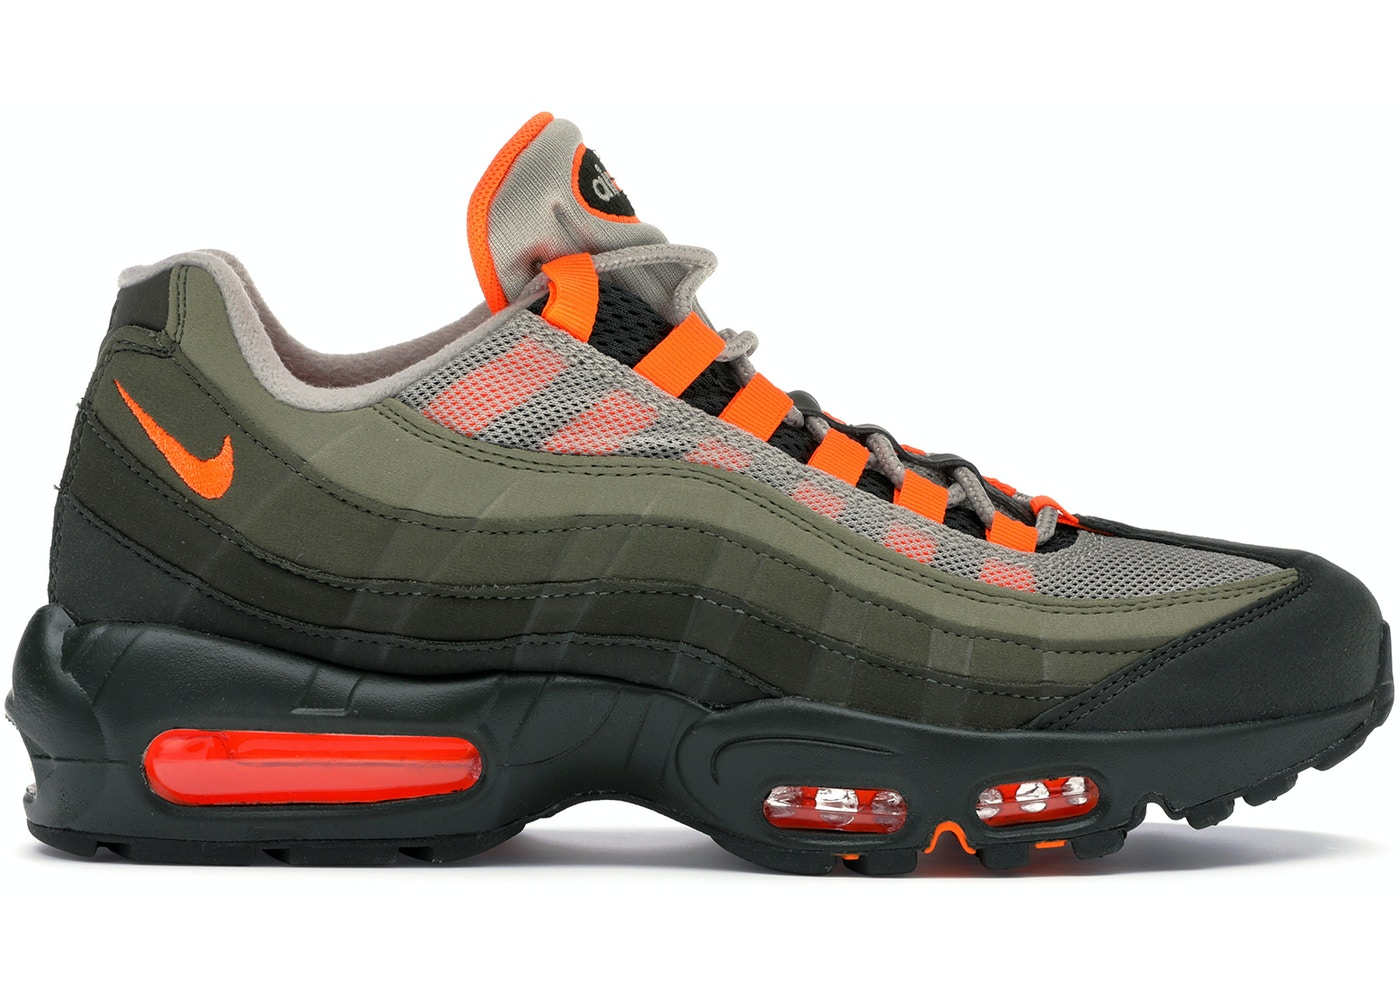 wholesale dealer 2255a d8d6c Air Max 95 OG Neutral Olive Total Orange - AT2865-200